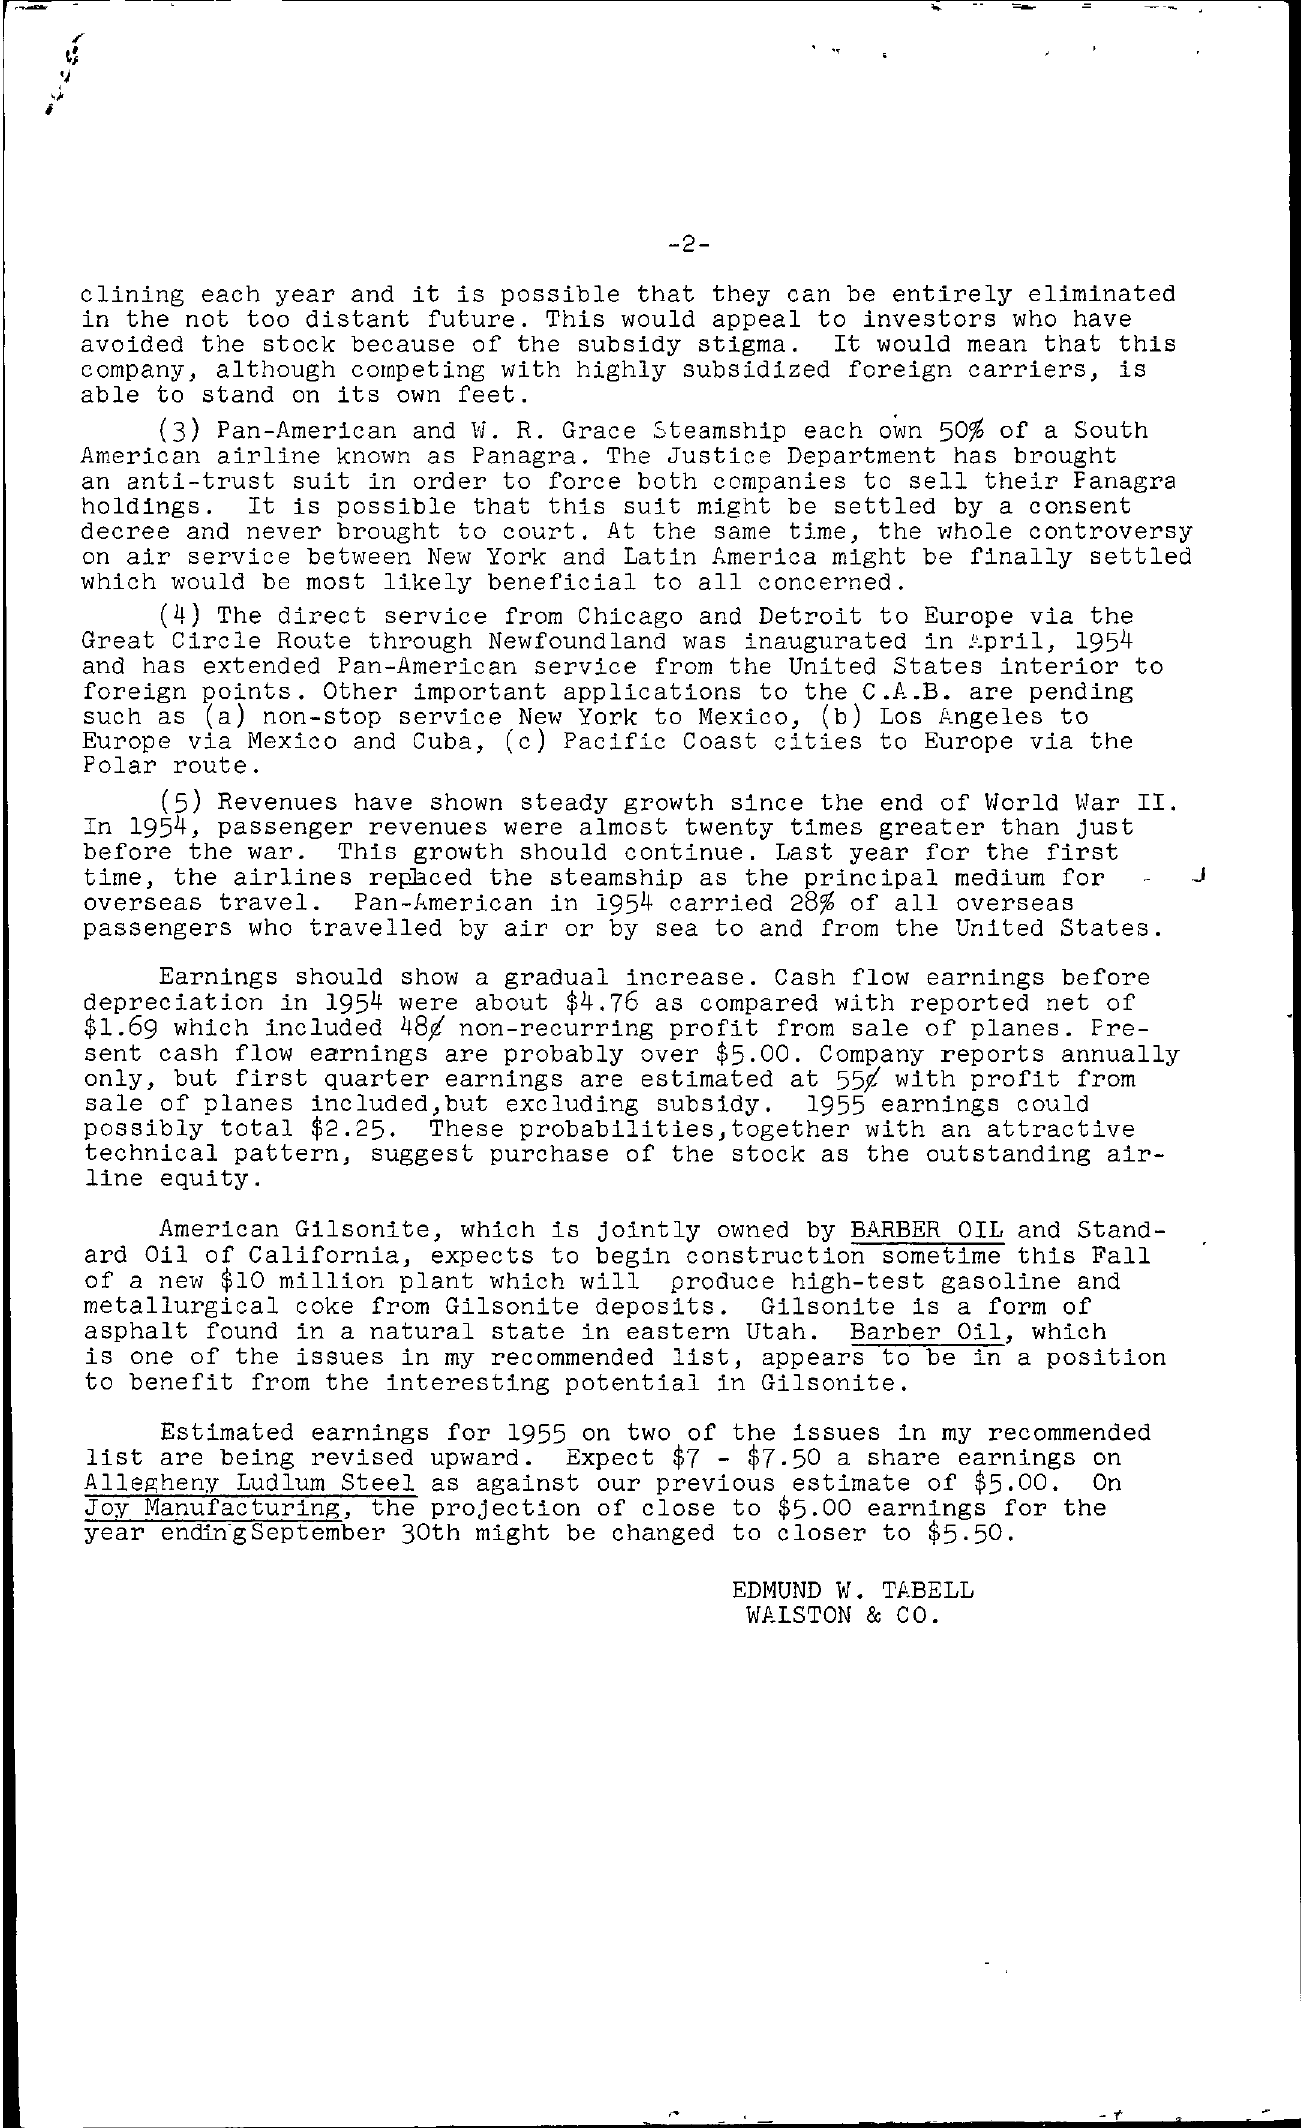 Tabell's Market Letter - June 24, 1955 page 2